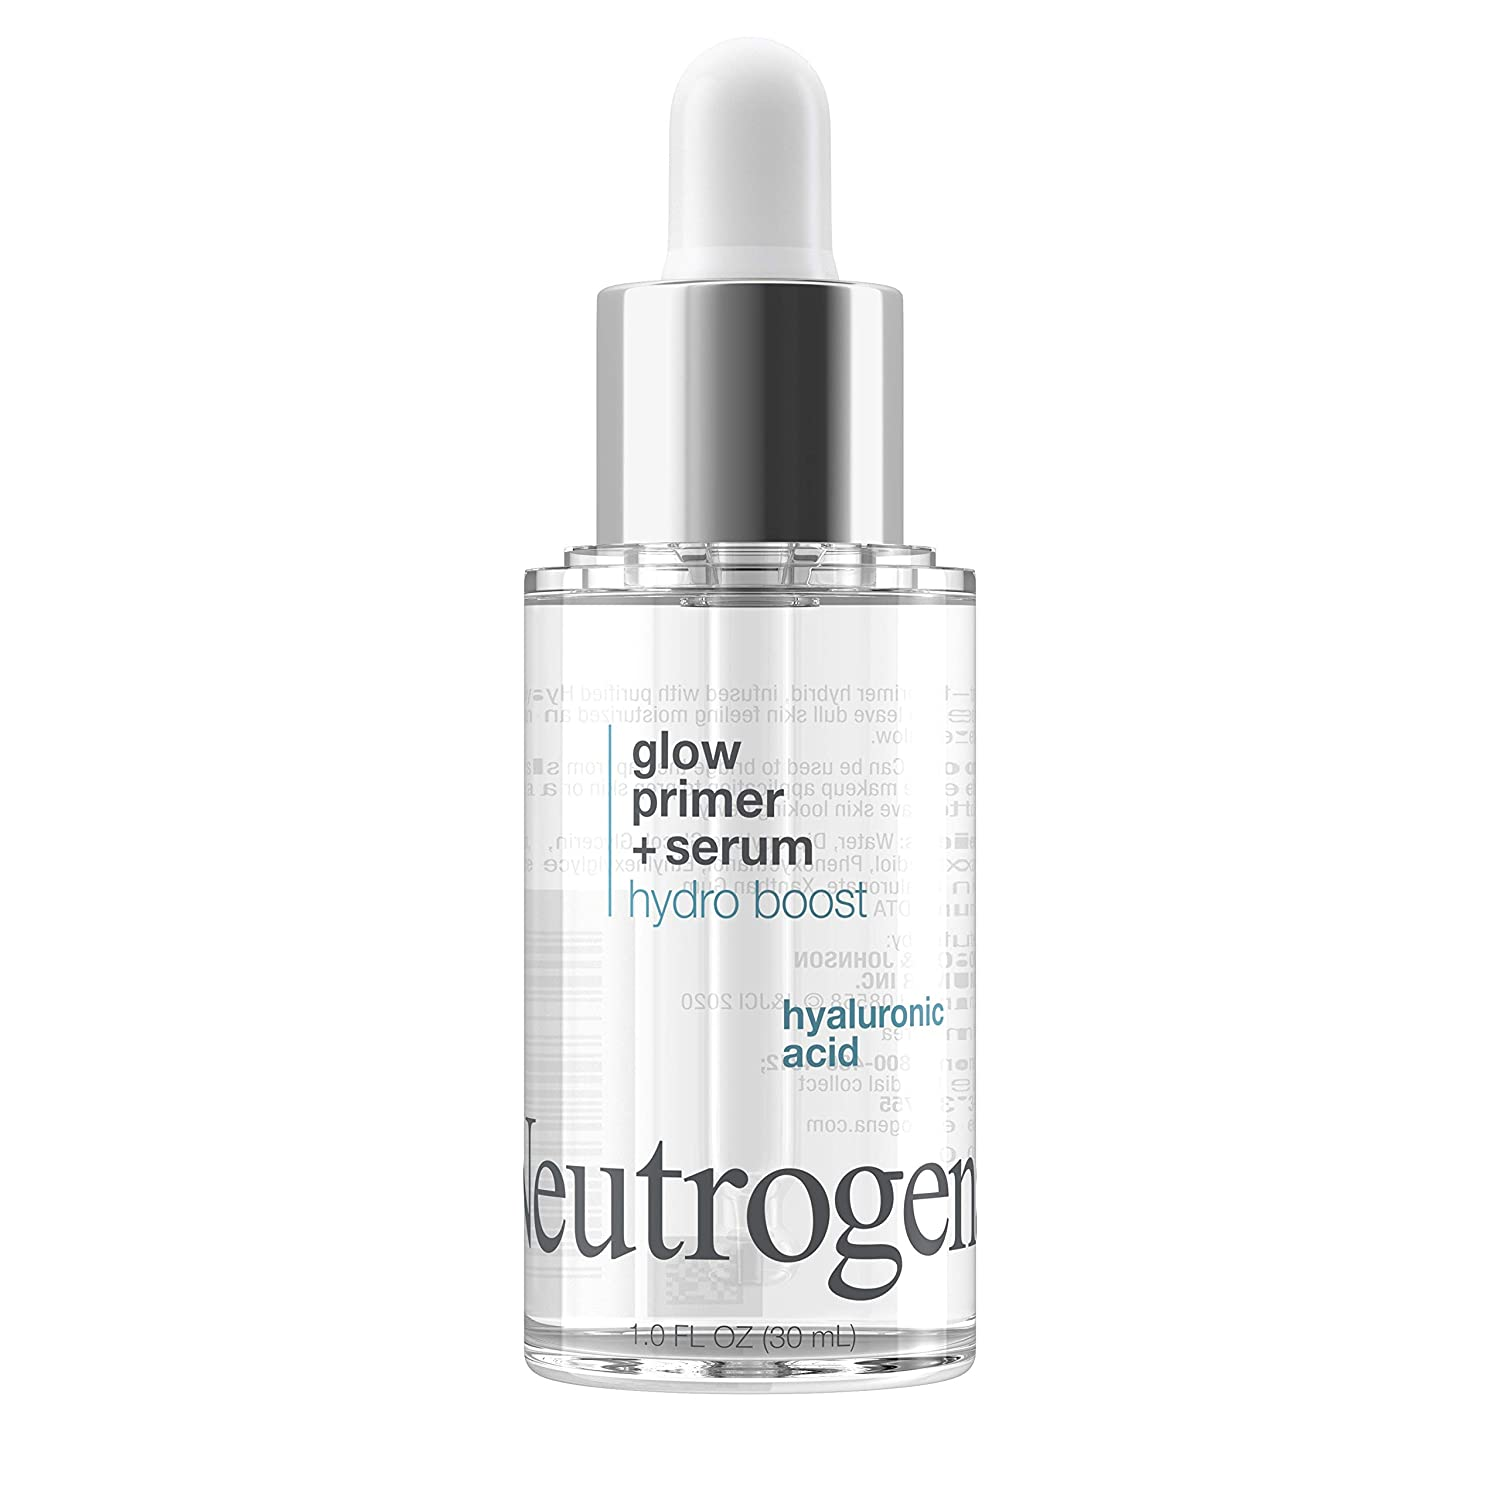 Neutrogena Hydro Boost Glow Booster Primer & Serum, Hydrating & Moisturizing Face Serum-to-Primer Hybrid, Infused with Purified Hyaluronic Acid & Designed to Instantly Hydrate, 1.0 fl. oz